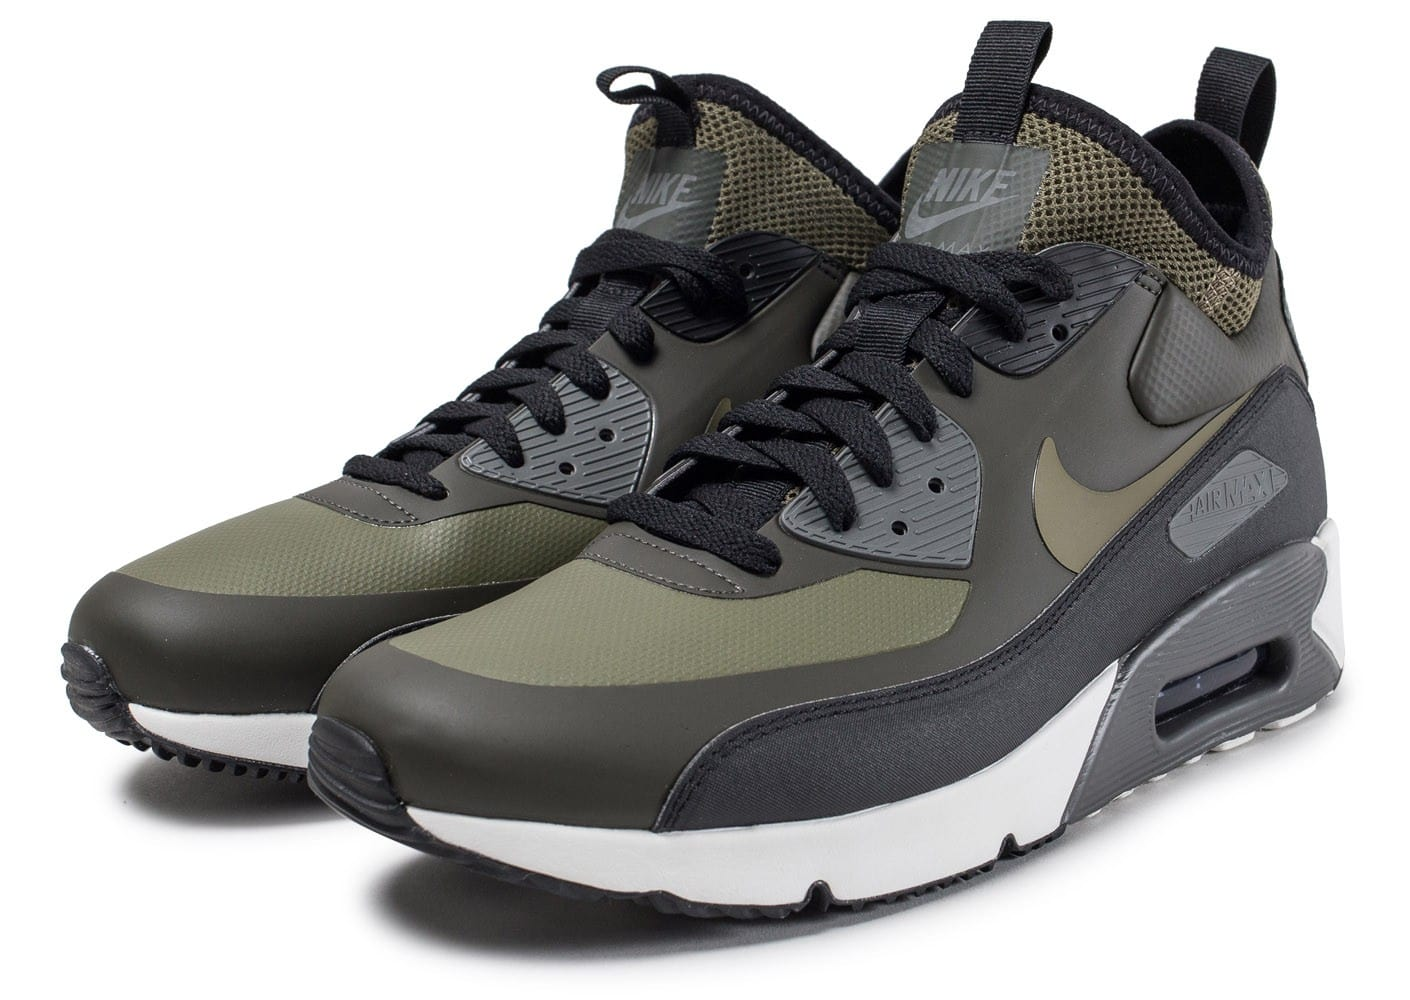 c342b96299a Nike Air Max 90 Ultra Mid Winter - Chaussures Homme .